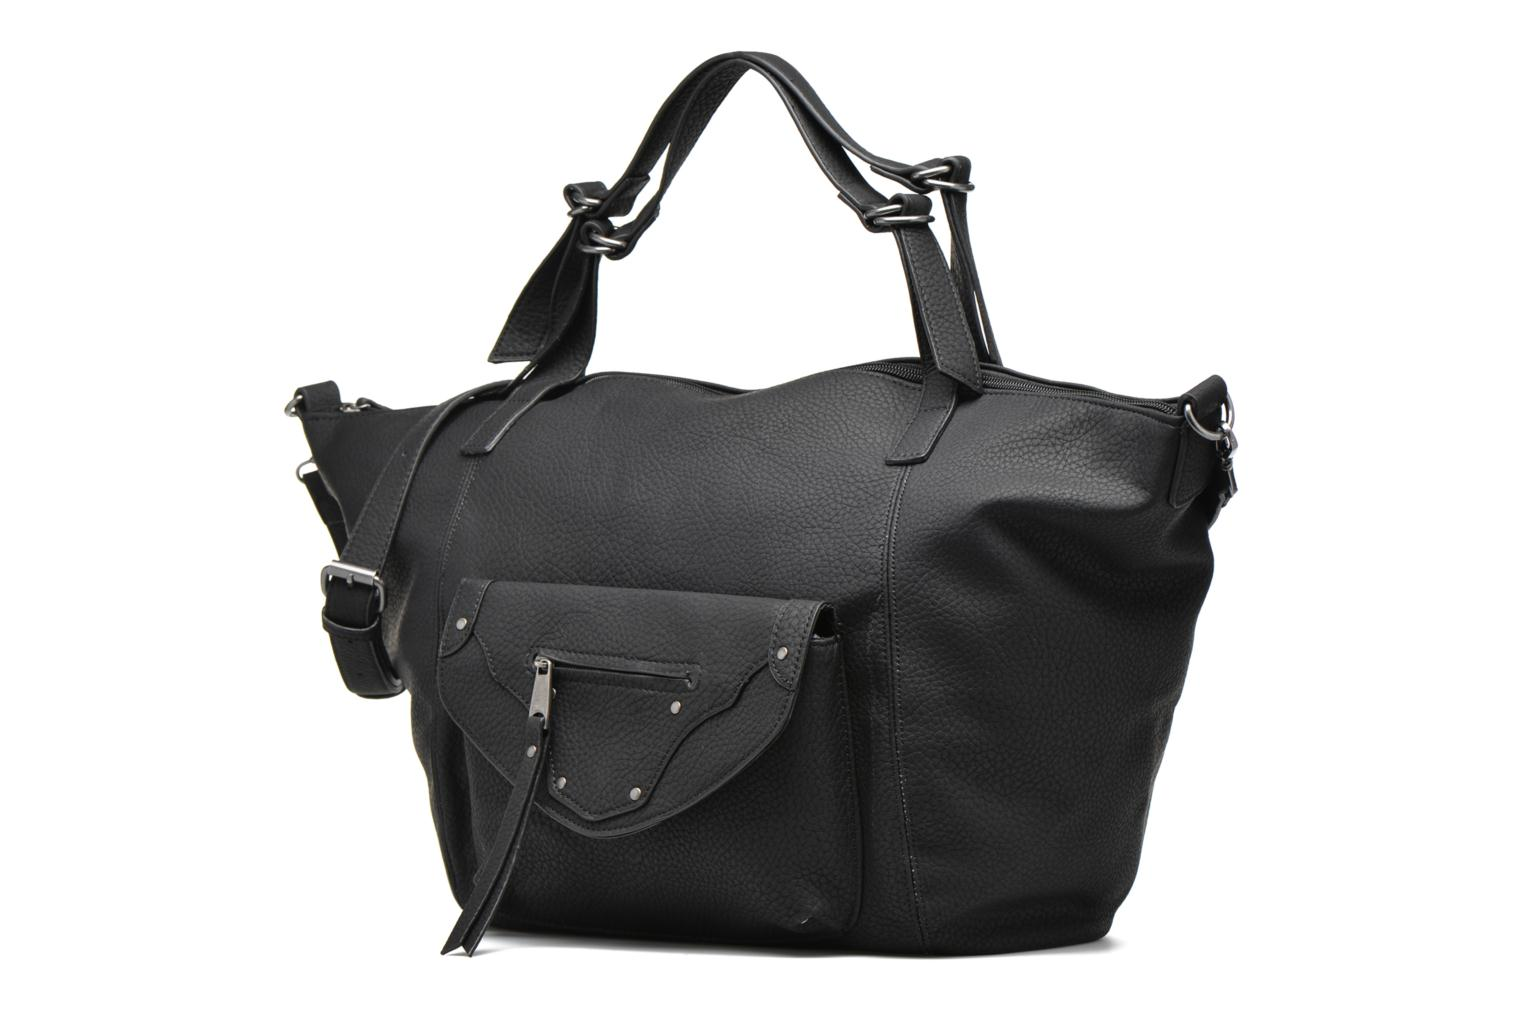 PEBEE Bag Black